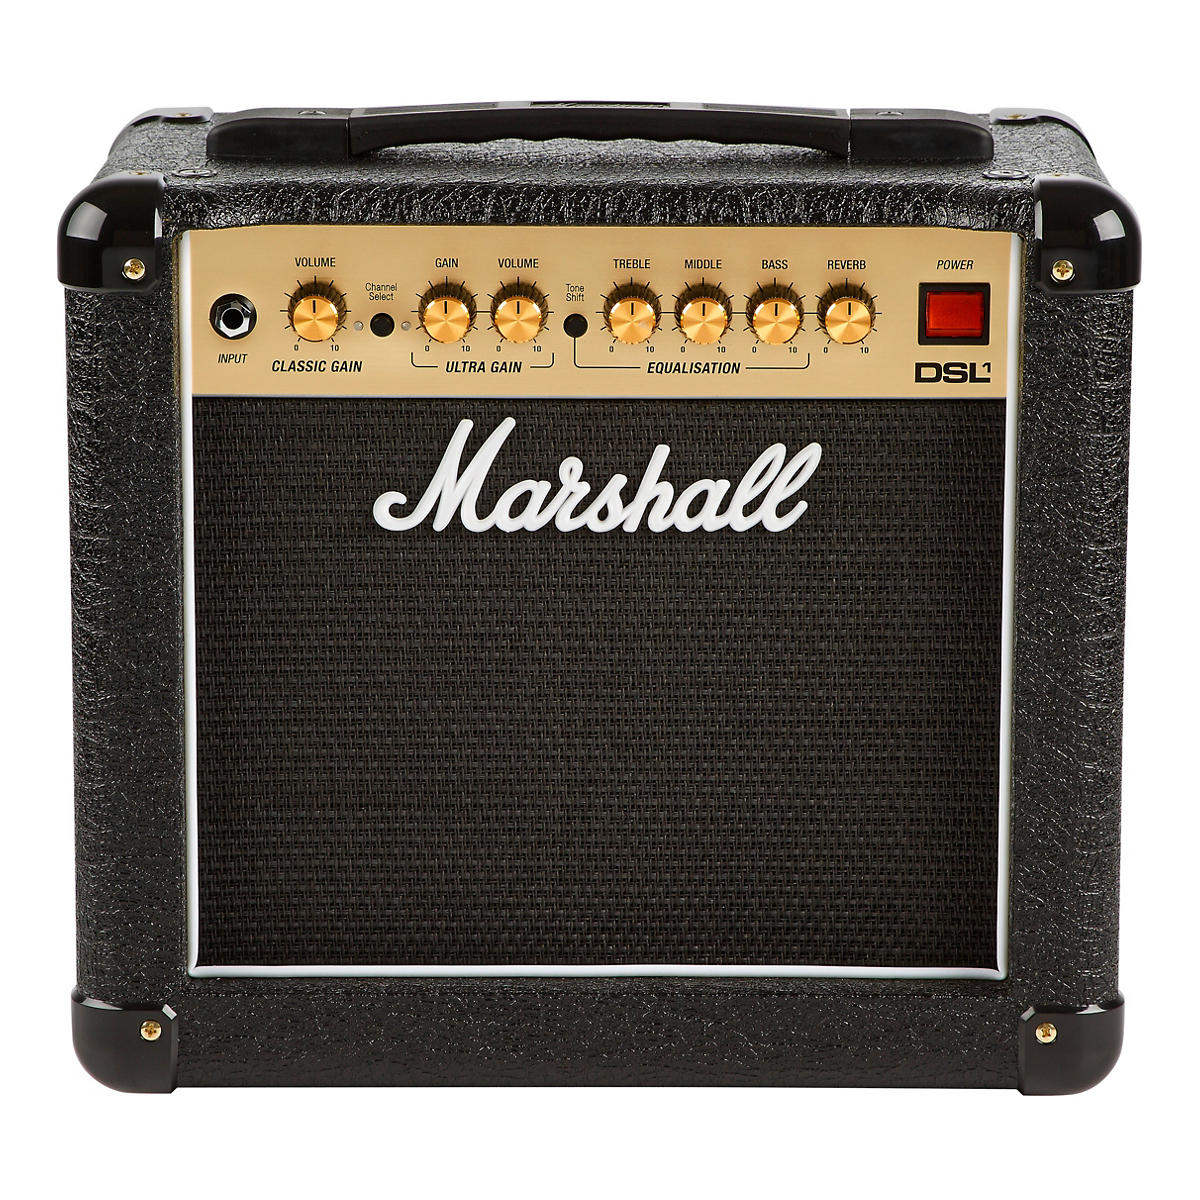 Marshall Updates the DSL Series for 2018